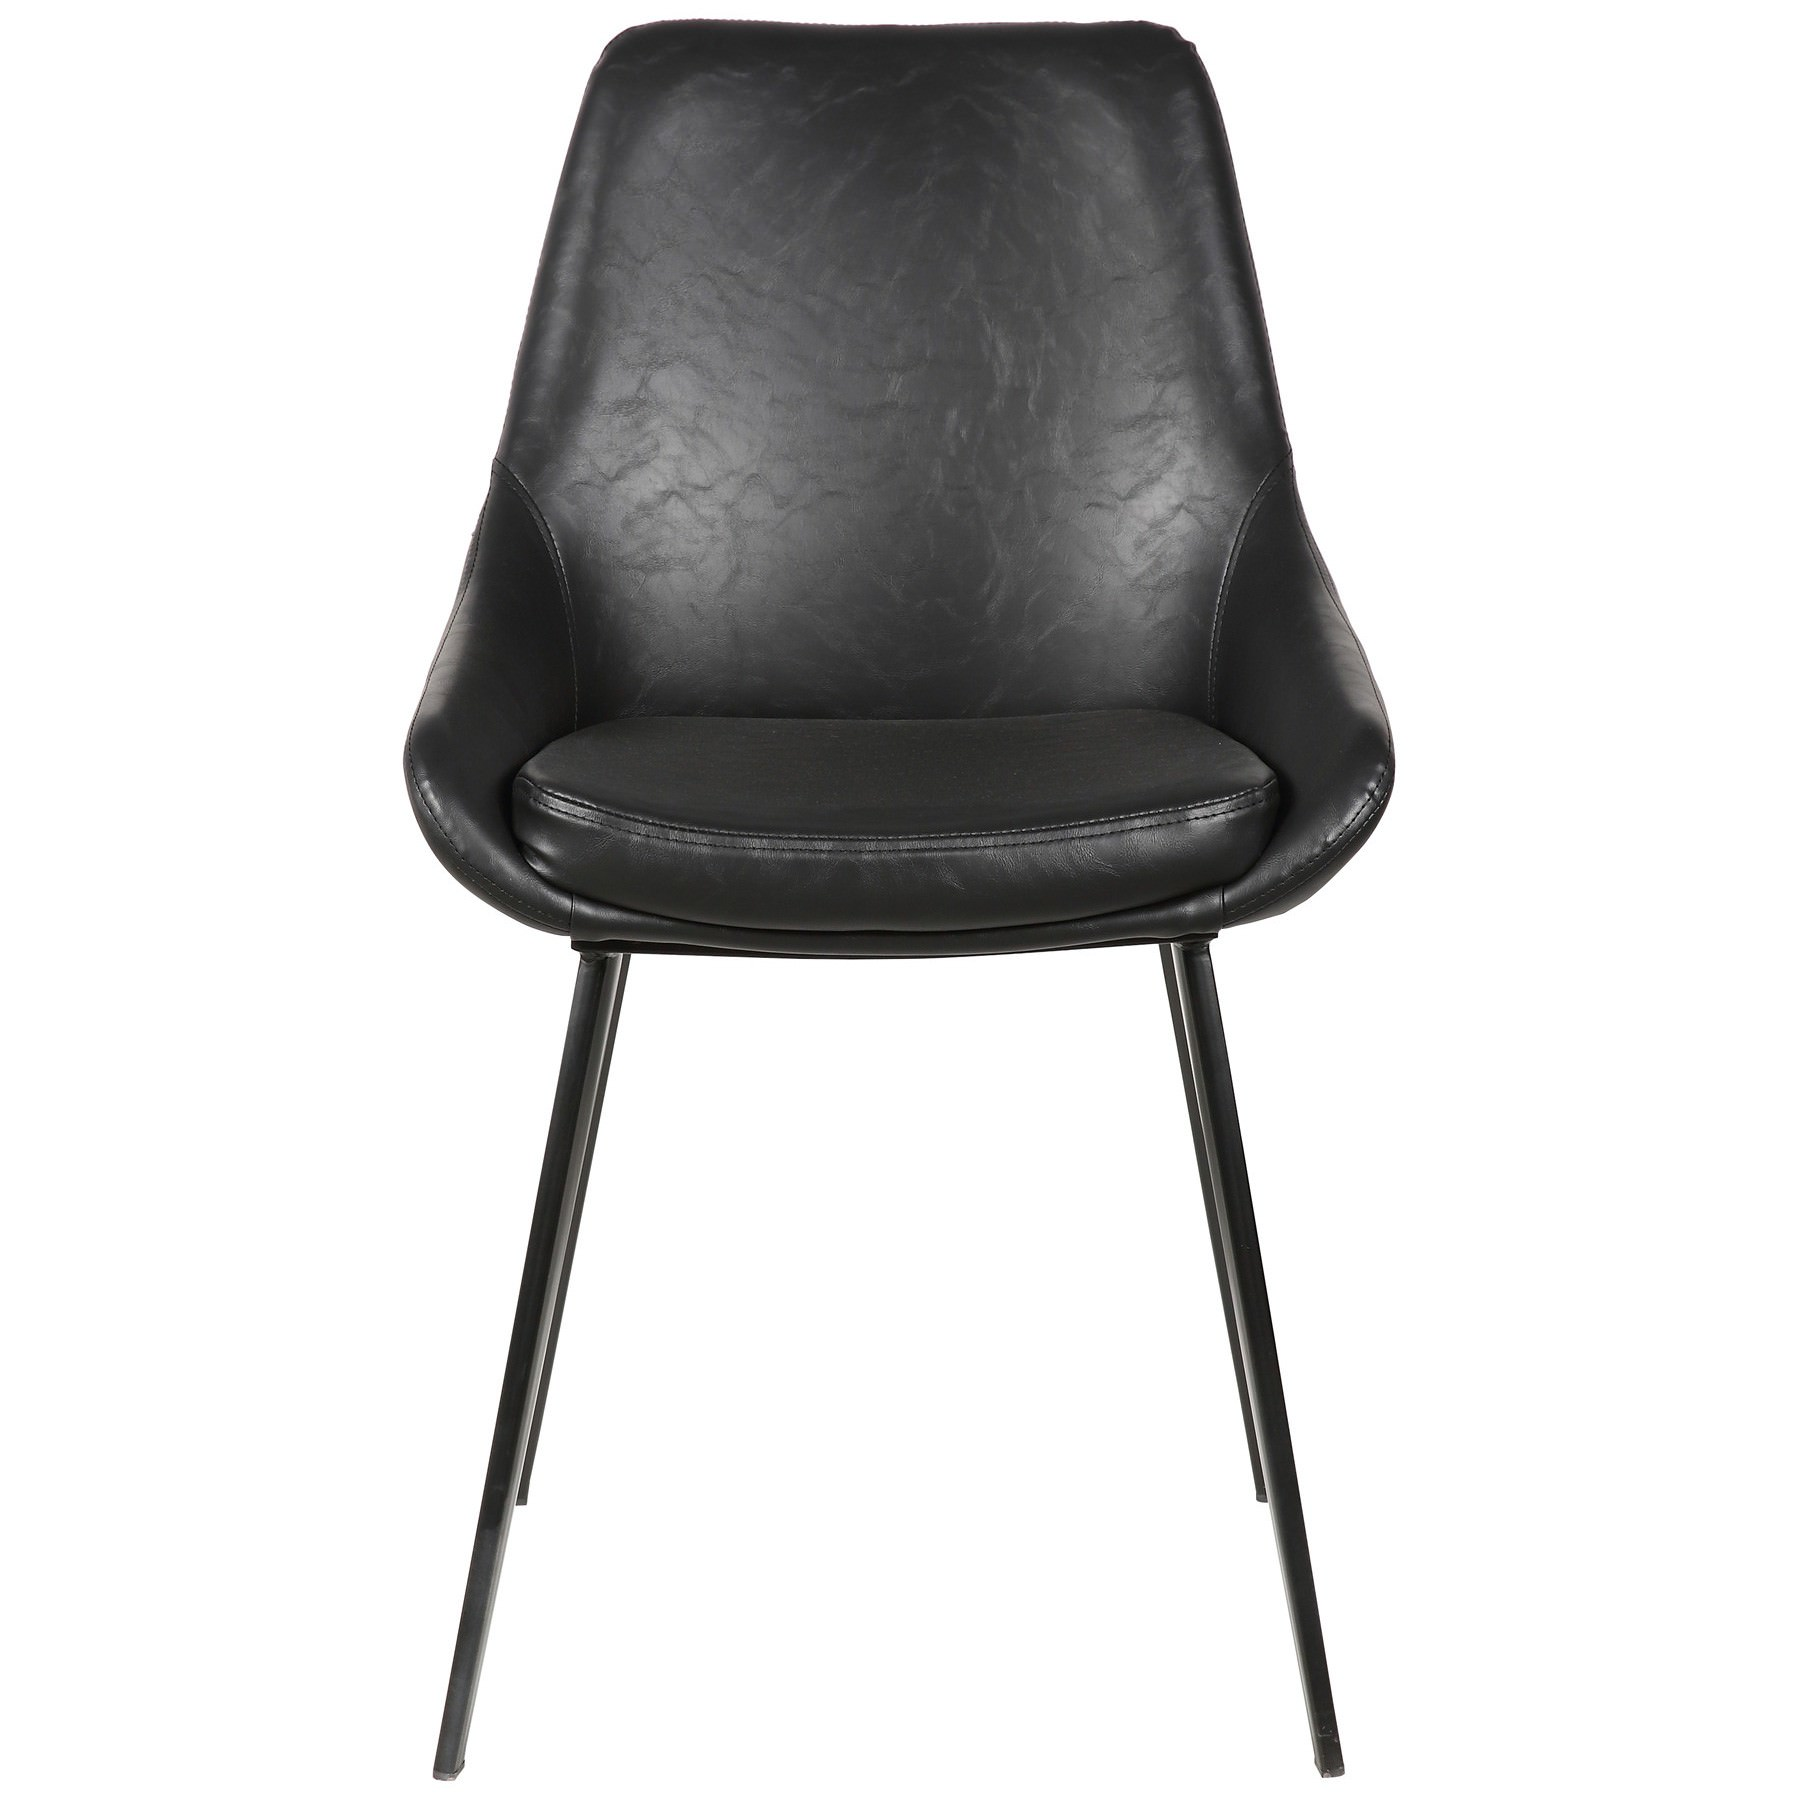 Domo Commercial Grade Faux Leather Dining Chair, Black